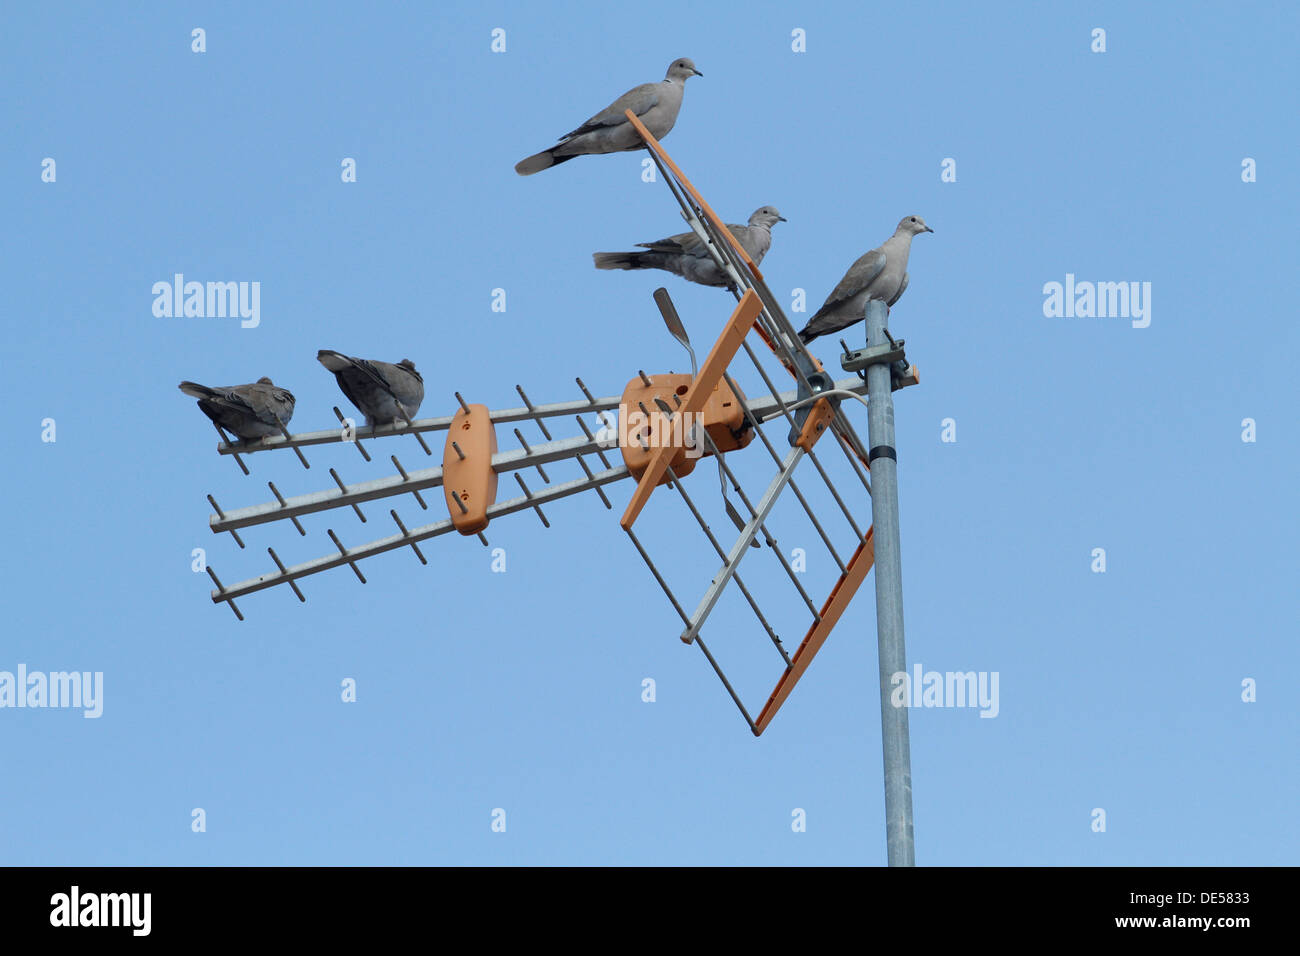 Pigeons standing on a television antenna. - Stock Image